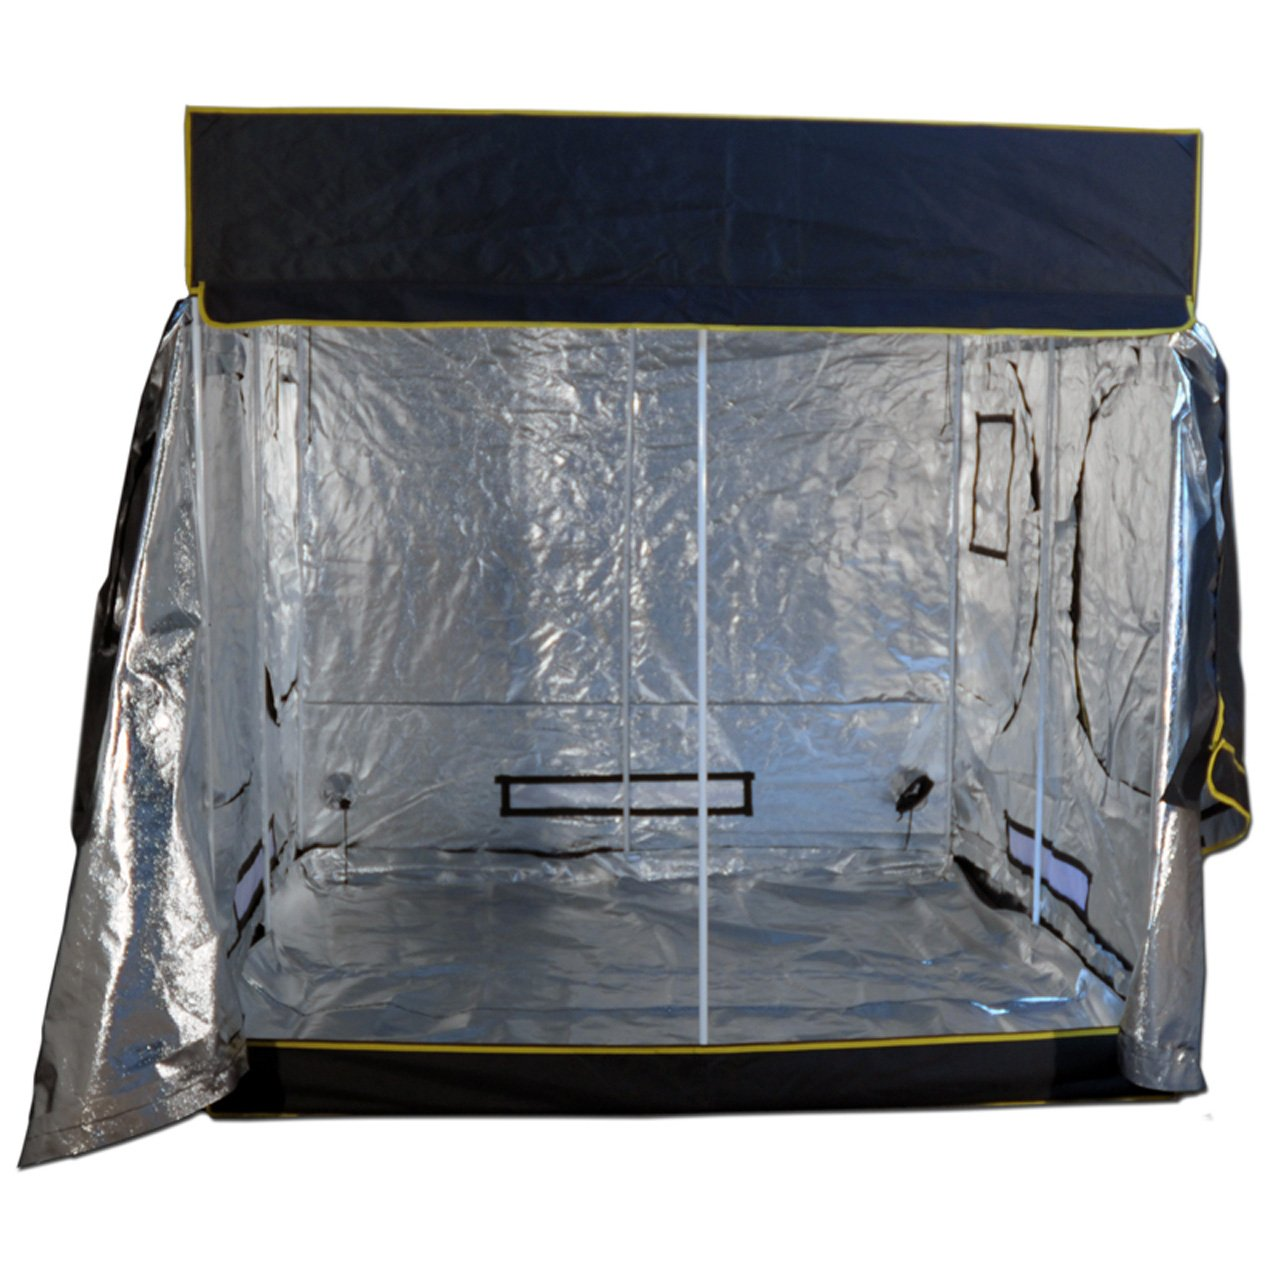 Lighthouse Hydro Hydroponics Grow Tent 78 by 78 by 78Inch Amazon.co.uk Garden u0026 Outdoors  sc 1 st  Amazon UK & Lighthouse Hydro Hydroponics Grow Tent 78 by 78 by 78Inch: Amazon ...